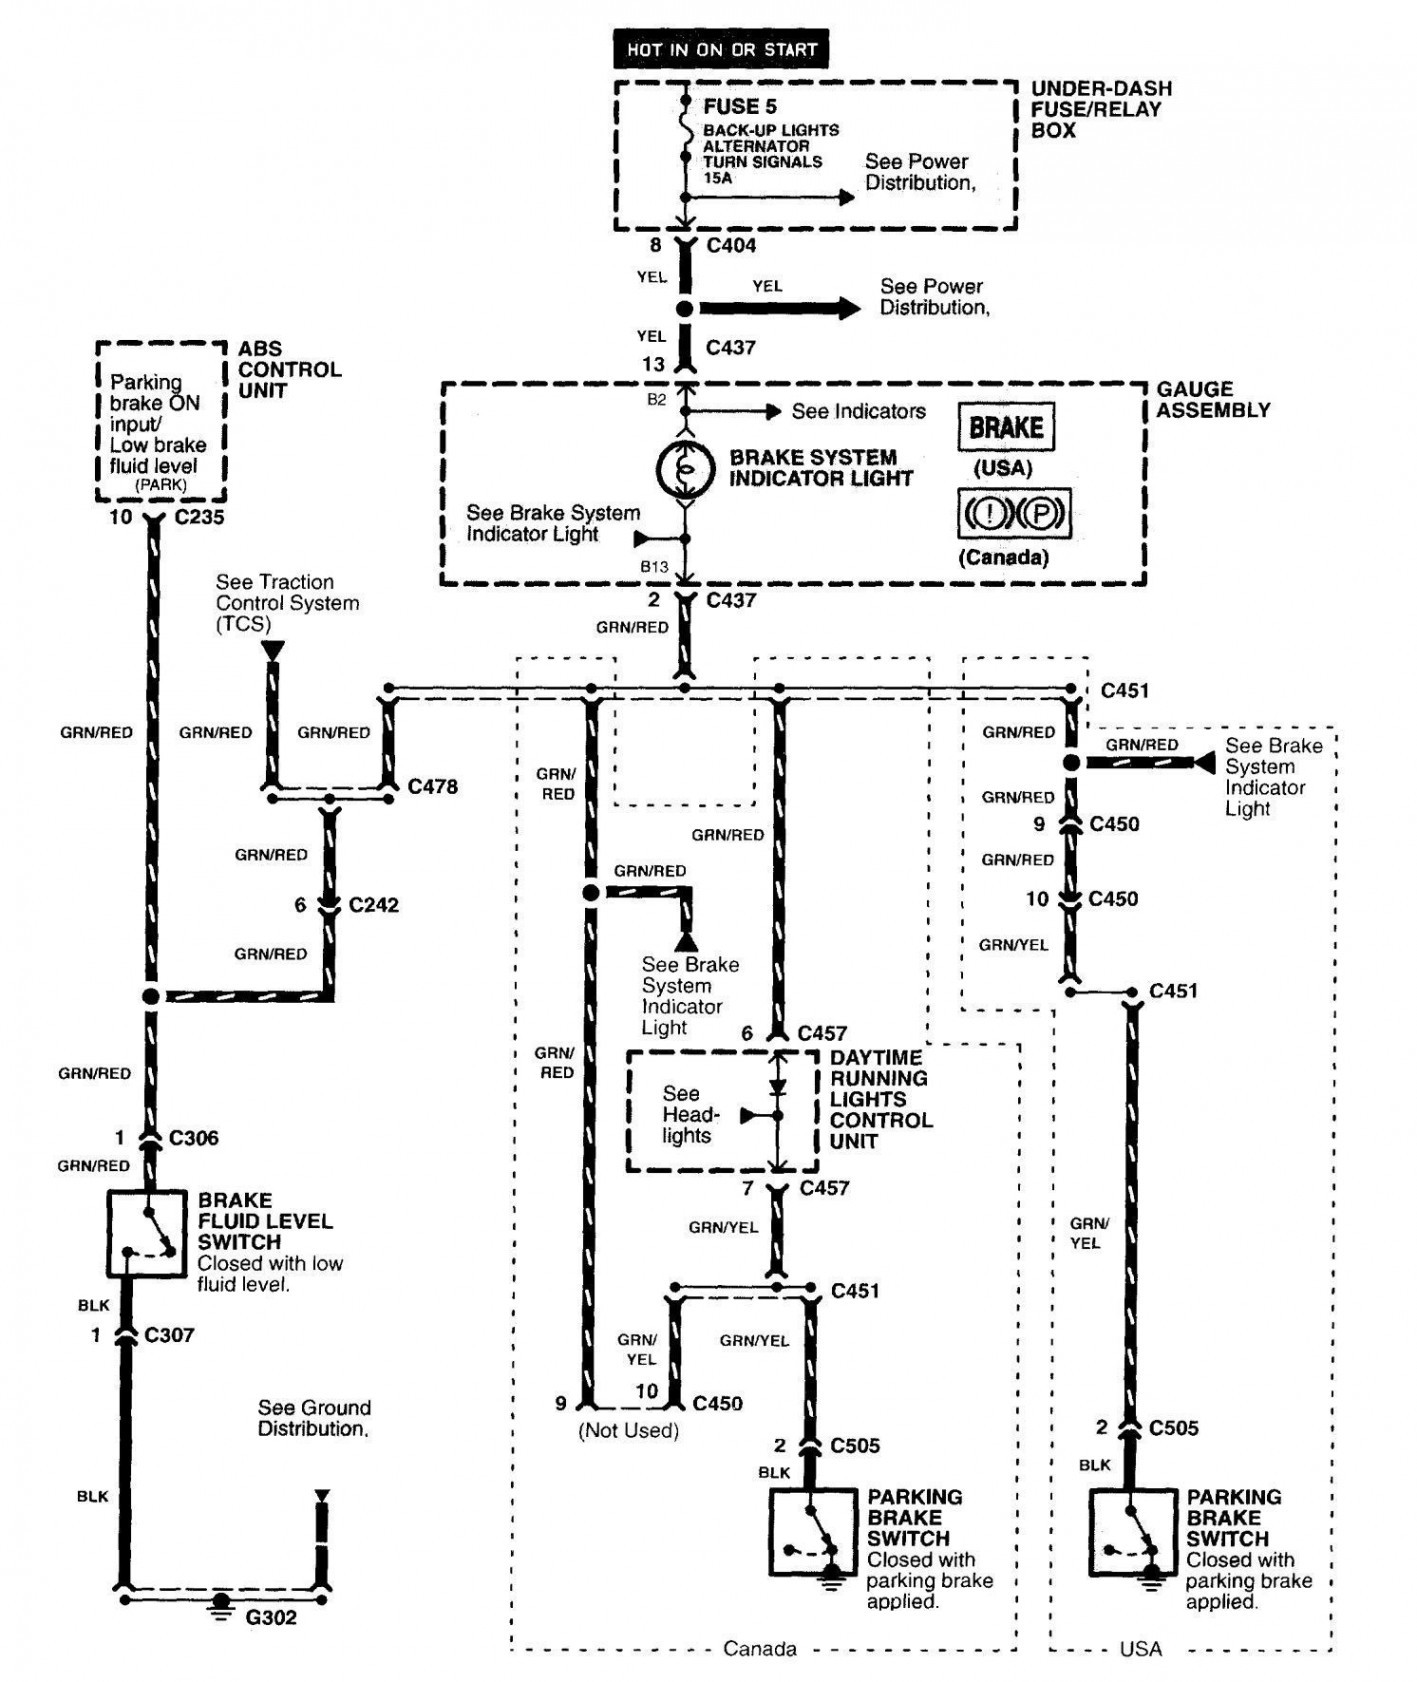 Mazda 323 Engine Diagram 1987 Mazda Wiring Hot Data Schematics Wiring Diagram •